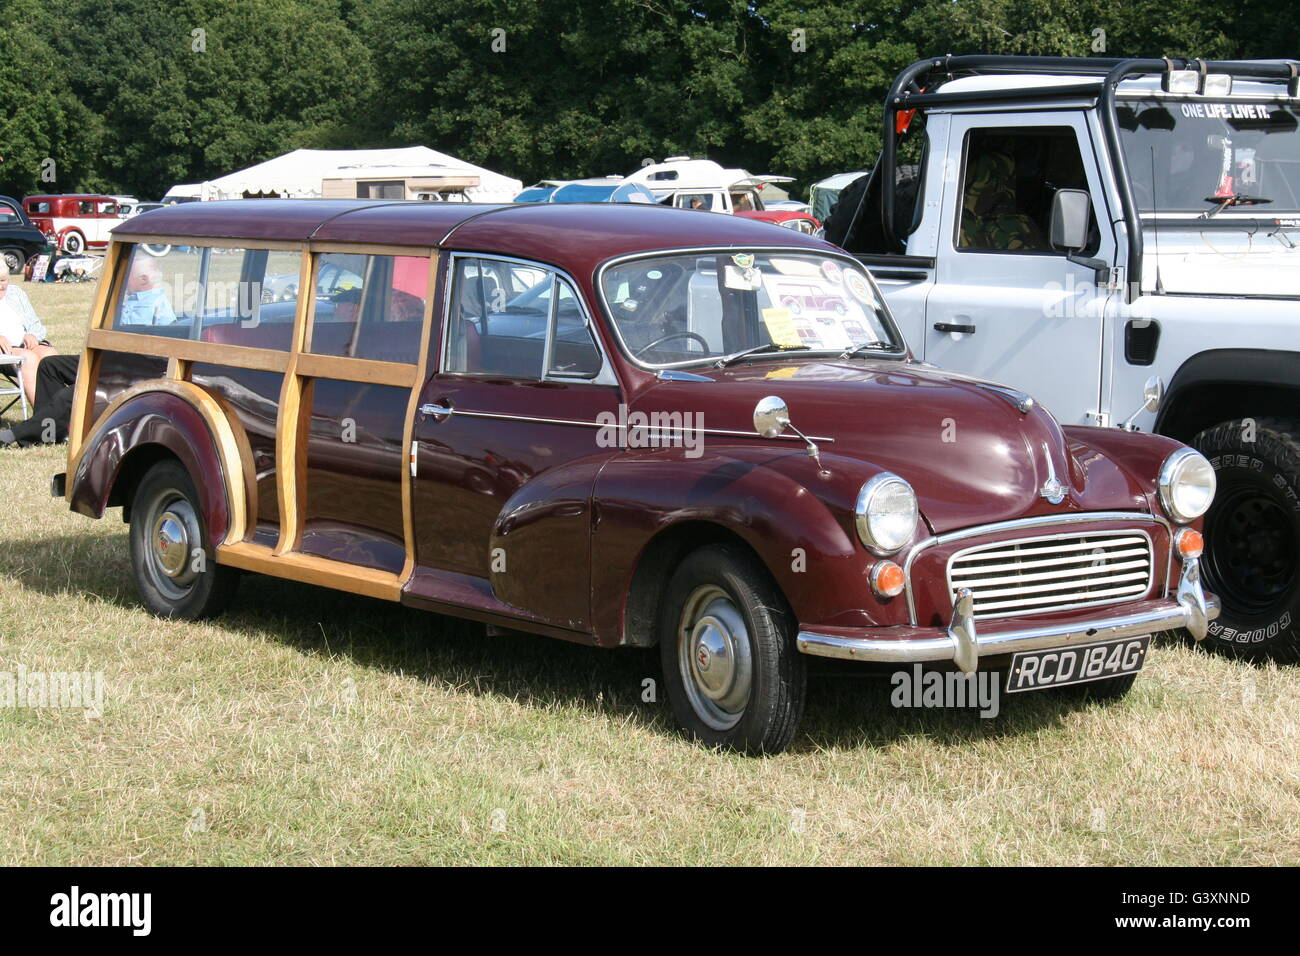 A CUSTOMISED LENGTHENED MORRIS MINOR TRAVELLER VINTAGE CLASSIC CAR - Stock Image